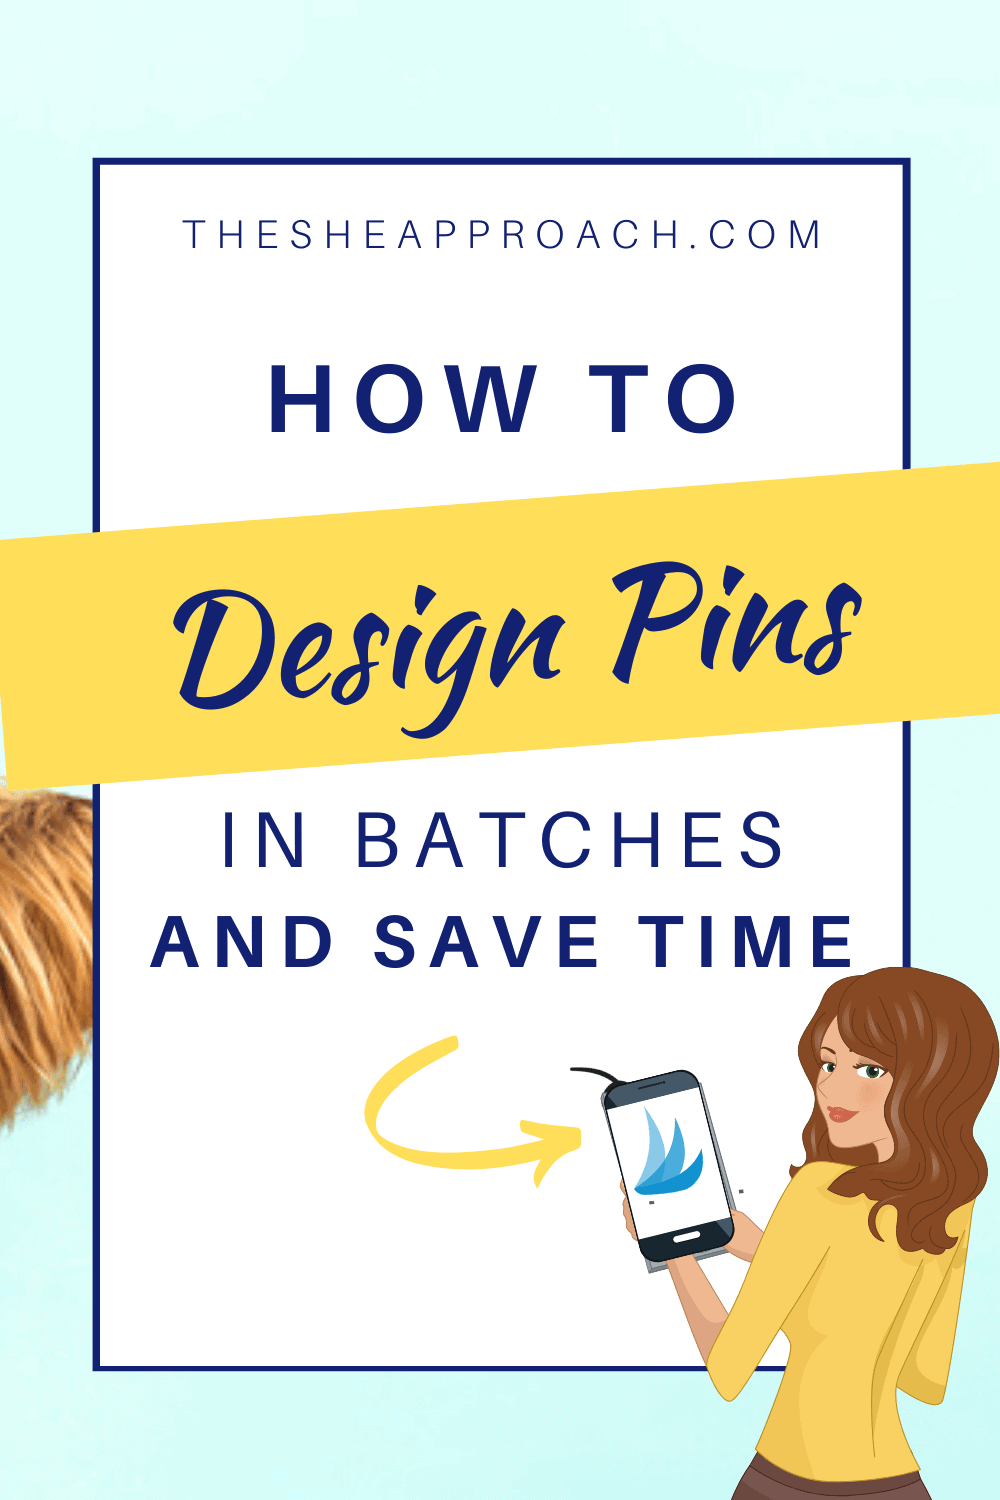 How To Make Pinterest Pins Fast: Using Tailwind Create To Batch Design New Pins Quickly